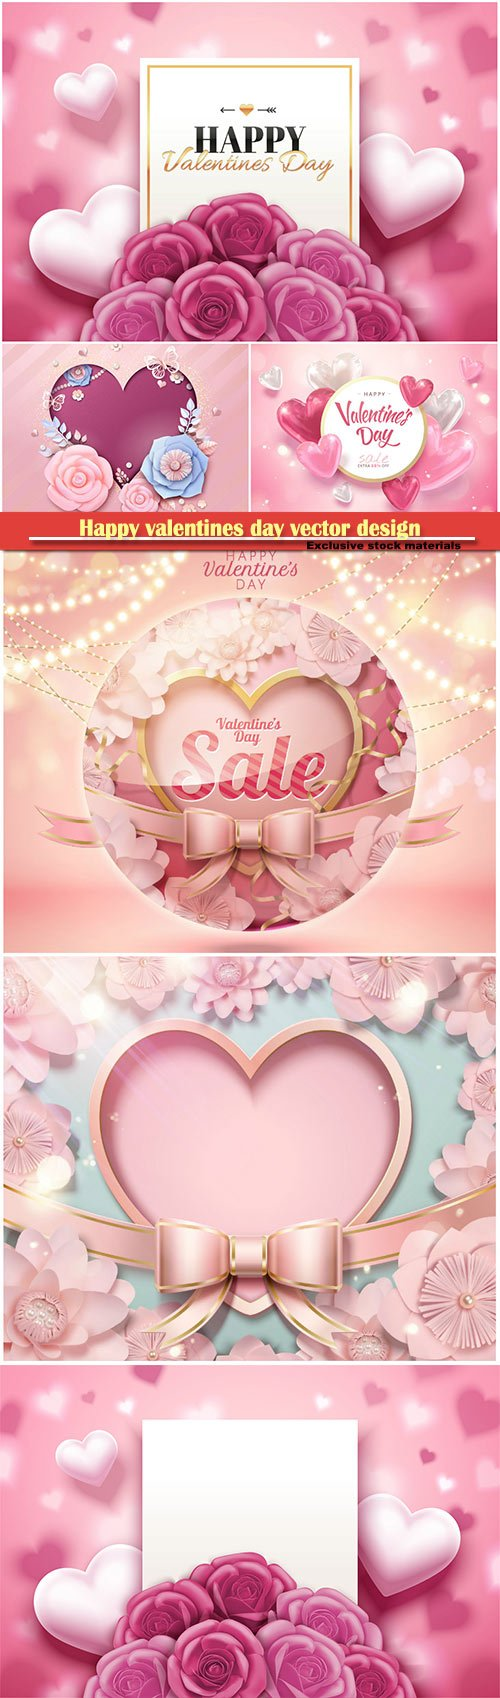 Happy valentines day vector design with heart, balloons, roses in 3d illustration # 9